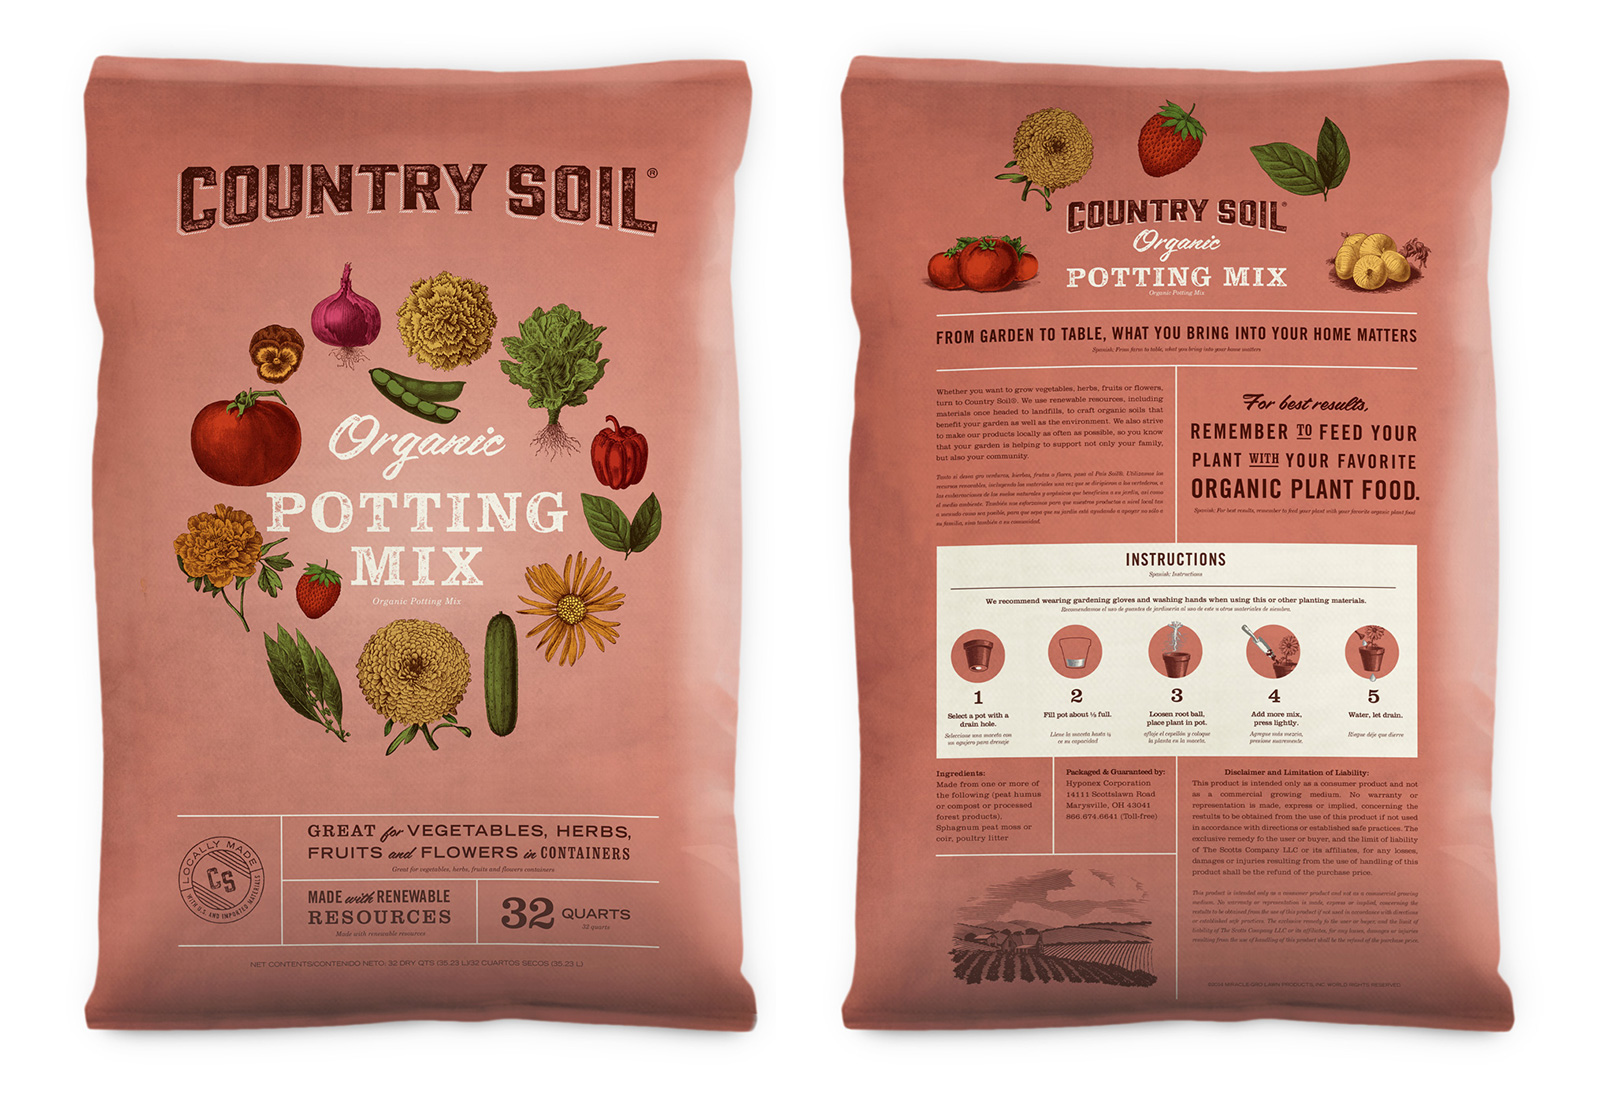 Agency Concept for Mid-tier Soil Packaging that Evokes Midwestern Values / World Brand & Packaging Design Society